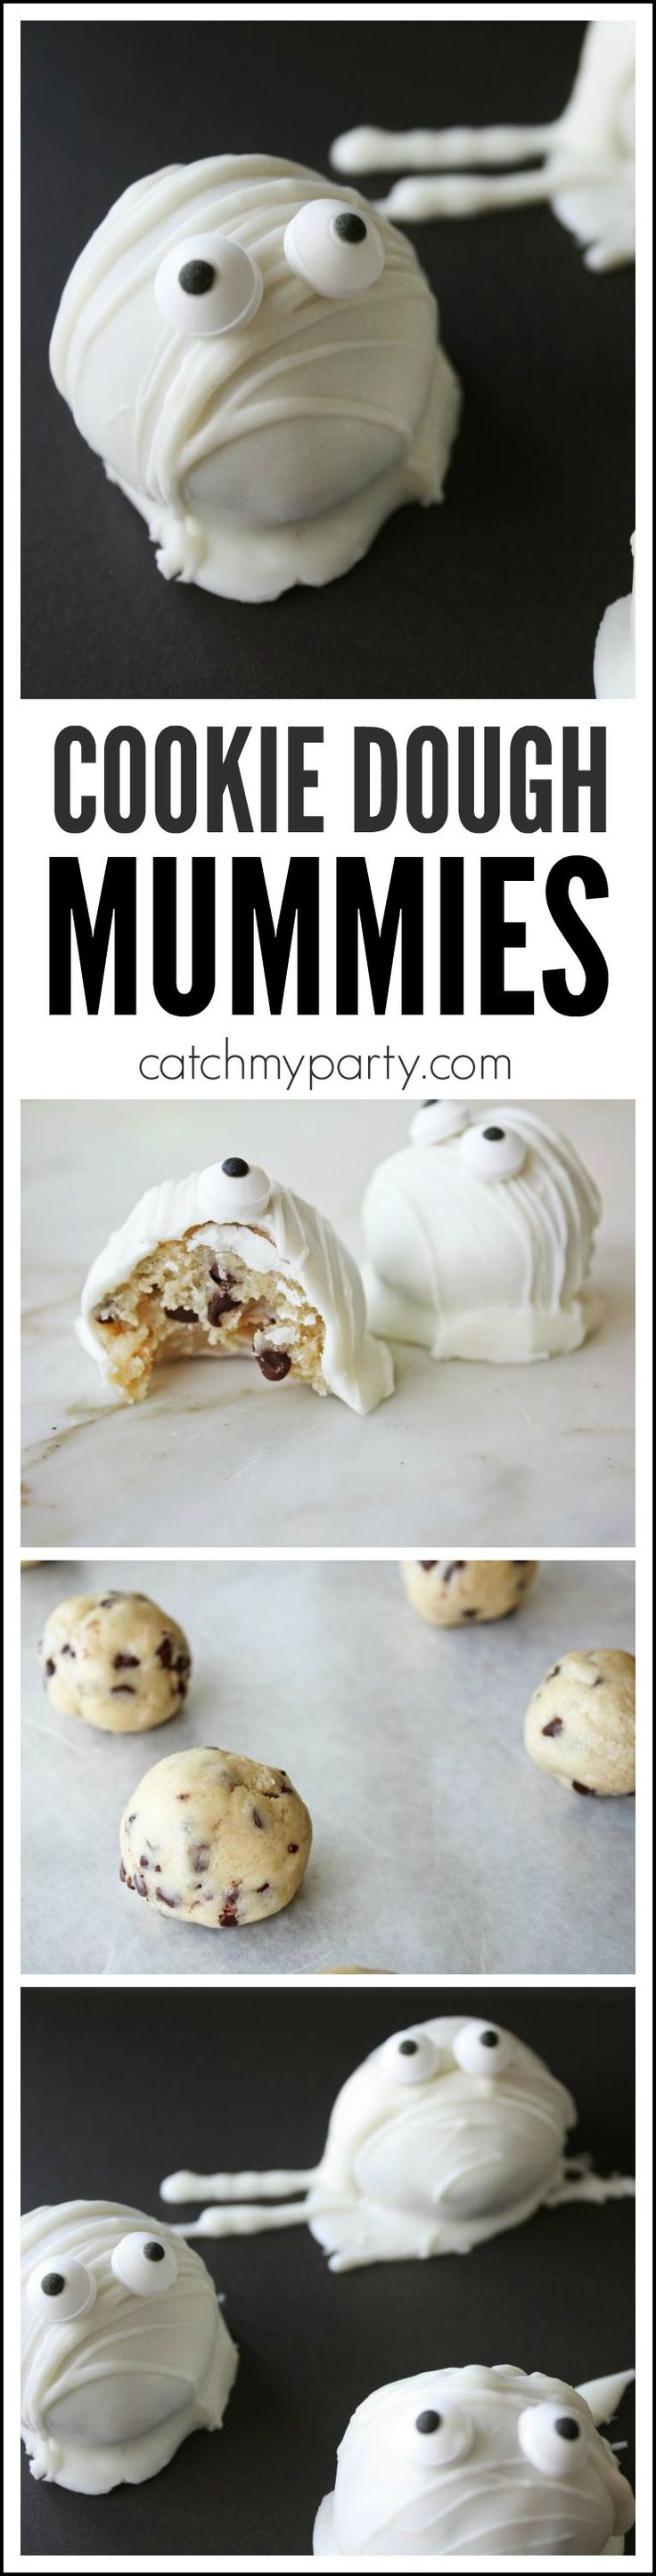 Cookie Dough Mummies | CatchMyParty.com